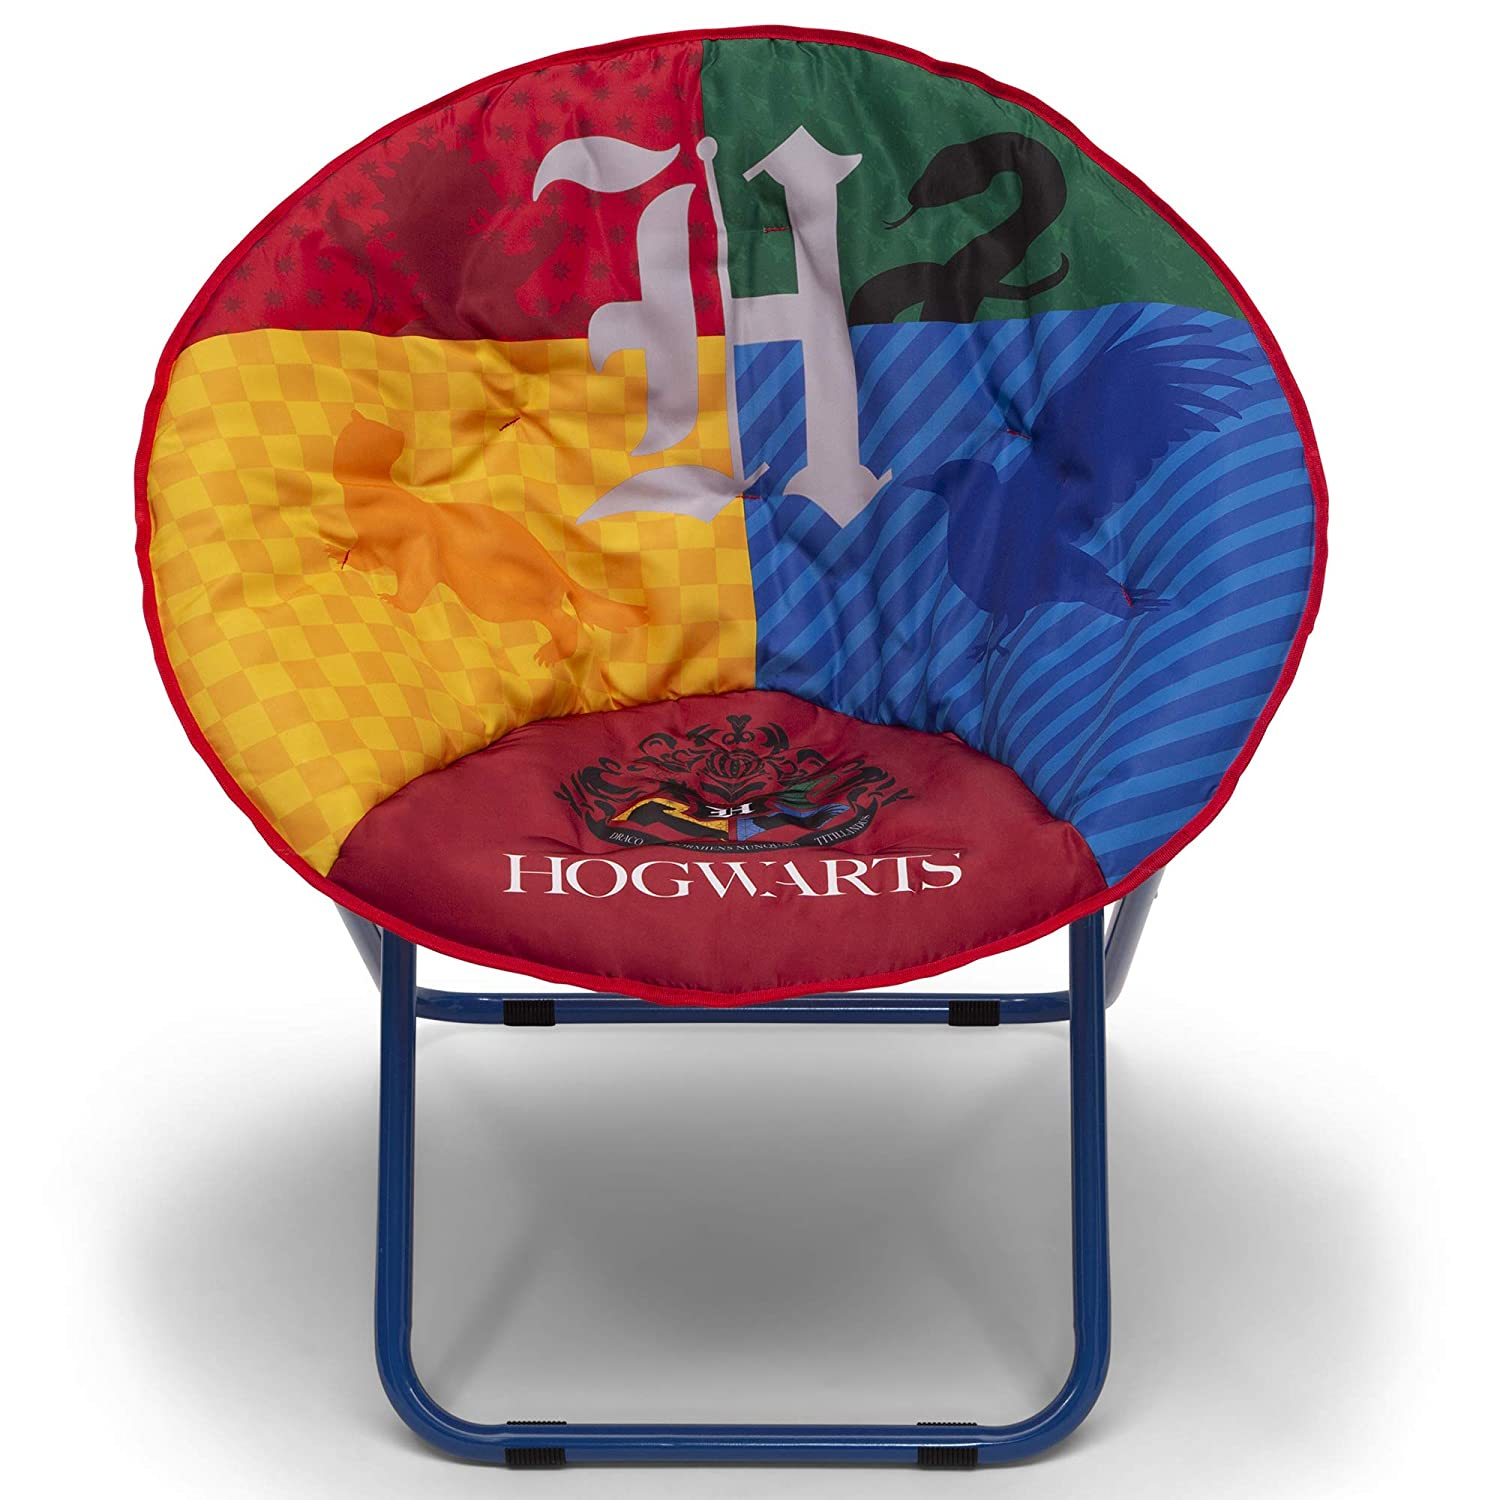 Delta Children Saucer Chair for Kids/Teens/Young Adults, Harry Potter